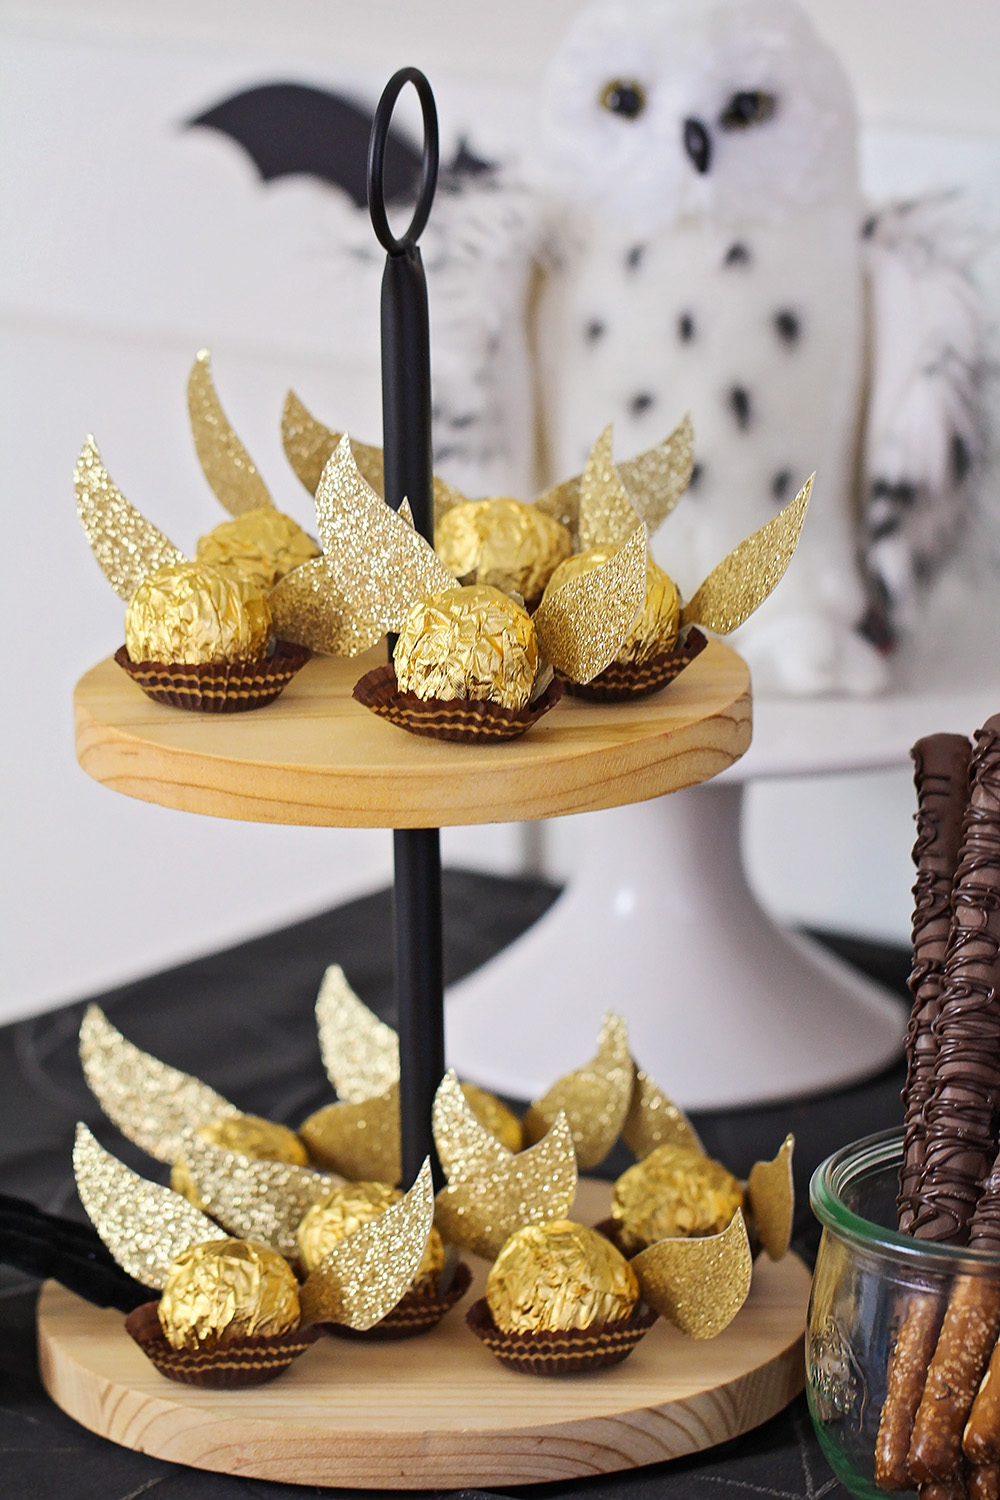 These seven delicious Harry Potter-inspired treats are sure to make your Halloween extra magical!